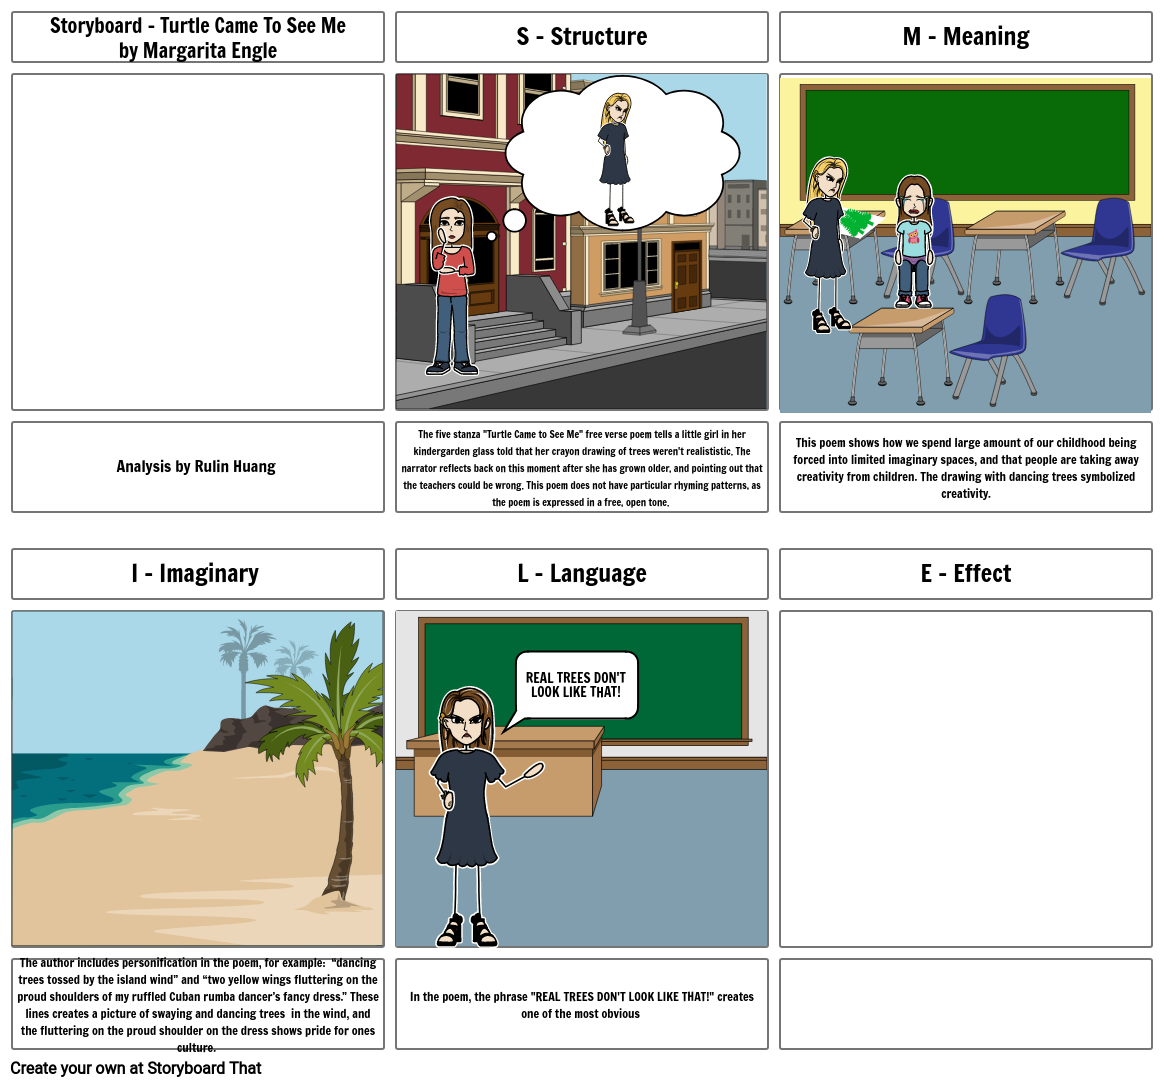 Storyboard Analysis - Turtle Came to See Me - Rulin Huang